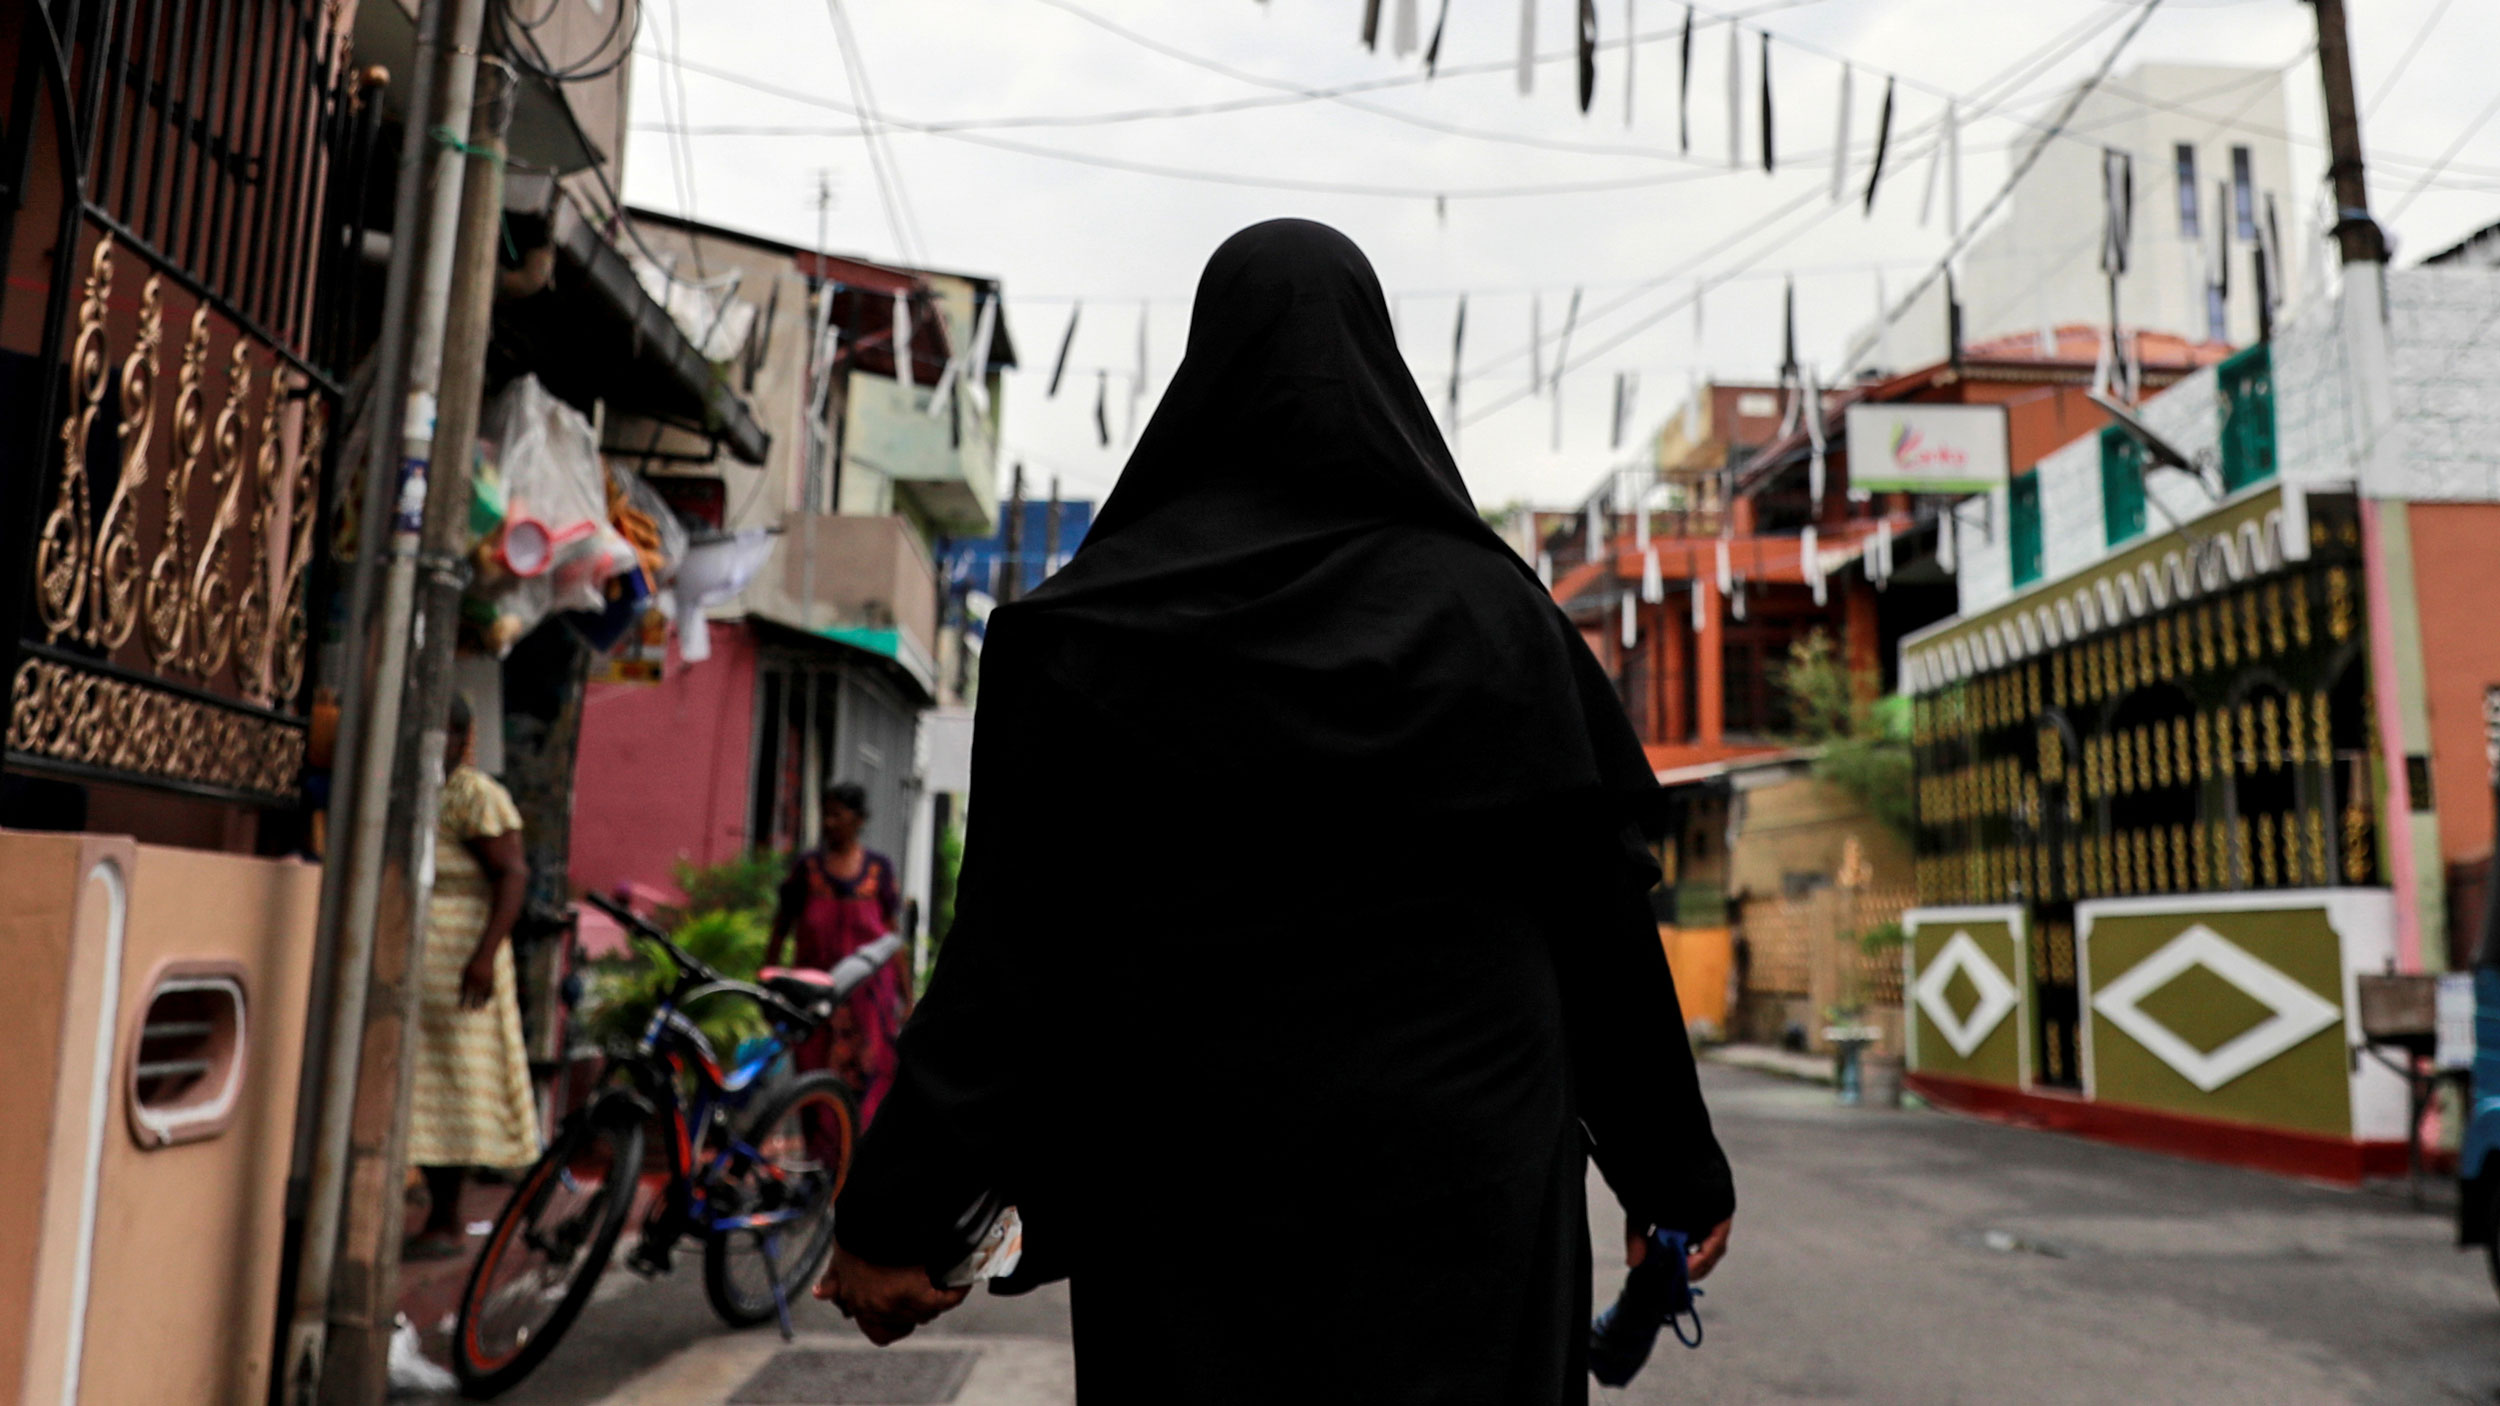 A woman is shown from behind wearing a black hijab walking through the middle of a street.